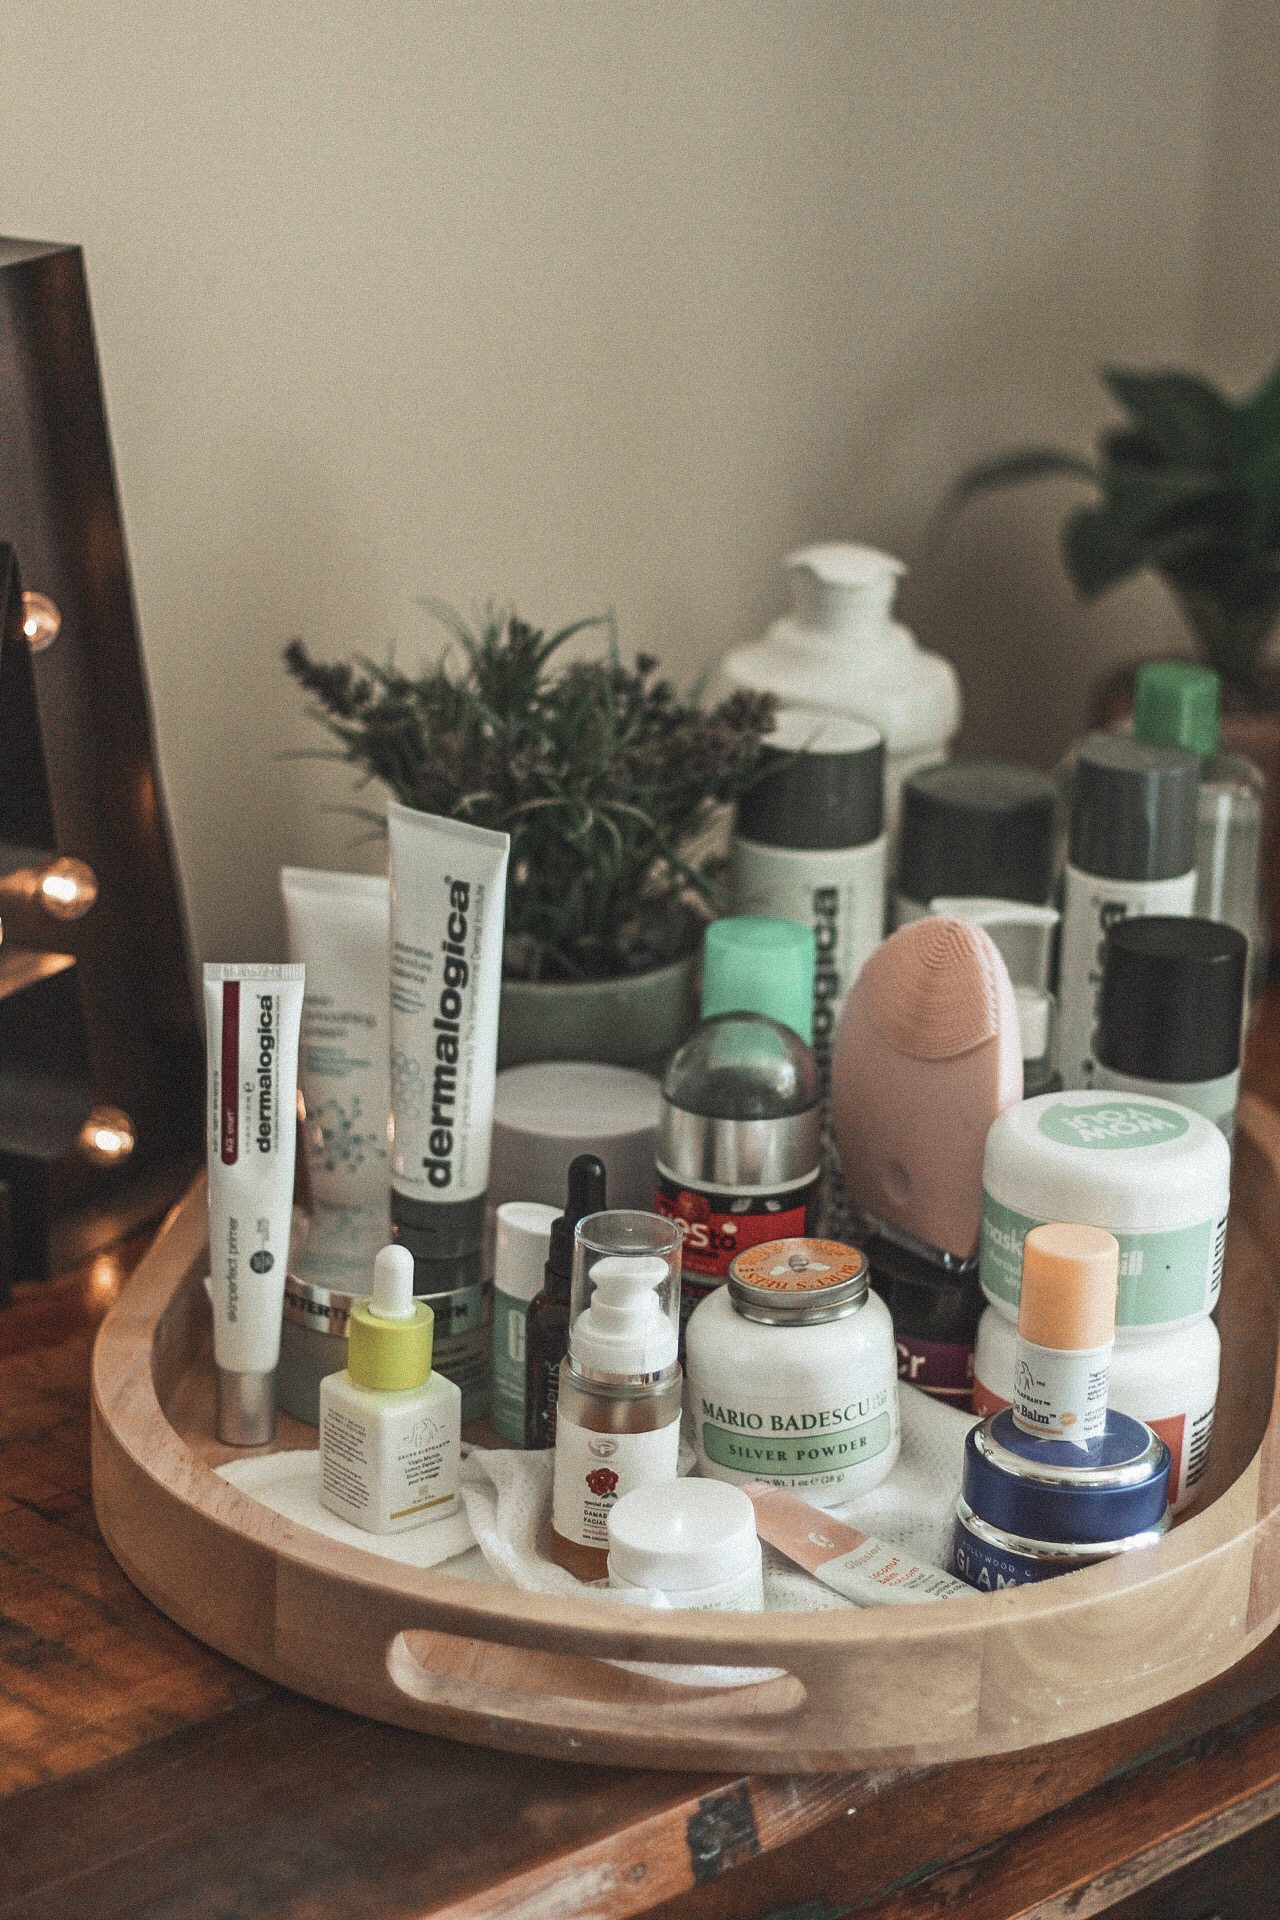 My ENTIRE skincare routine for dry/sensitive eczema-prone skin